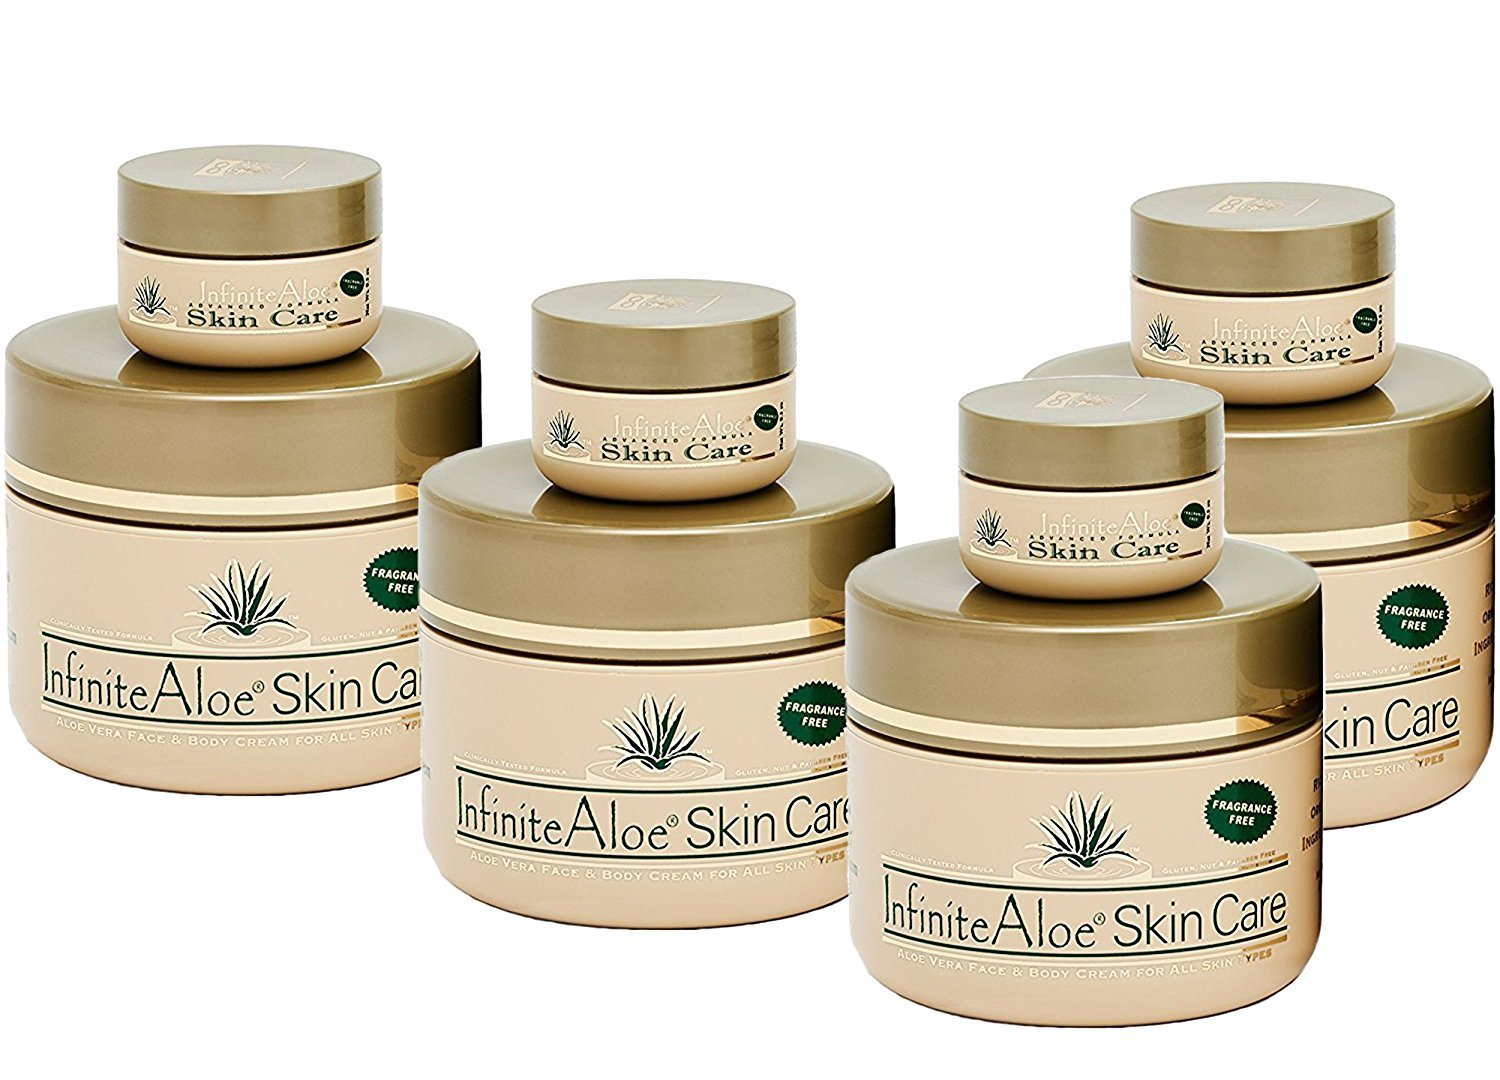 Infinite Aloe Skin Care Cream, Fragrance Free, 8oz. - 4 Jars - ** (Plus 4 Bonus 0.5 oz InfiniteAloe Travel Jars) **